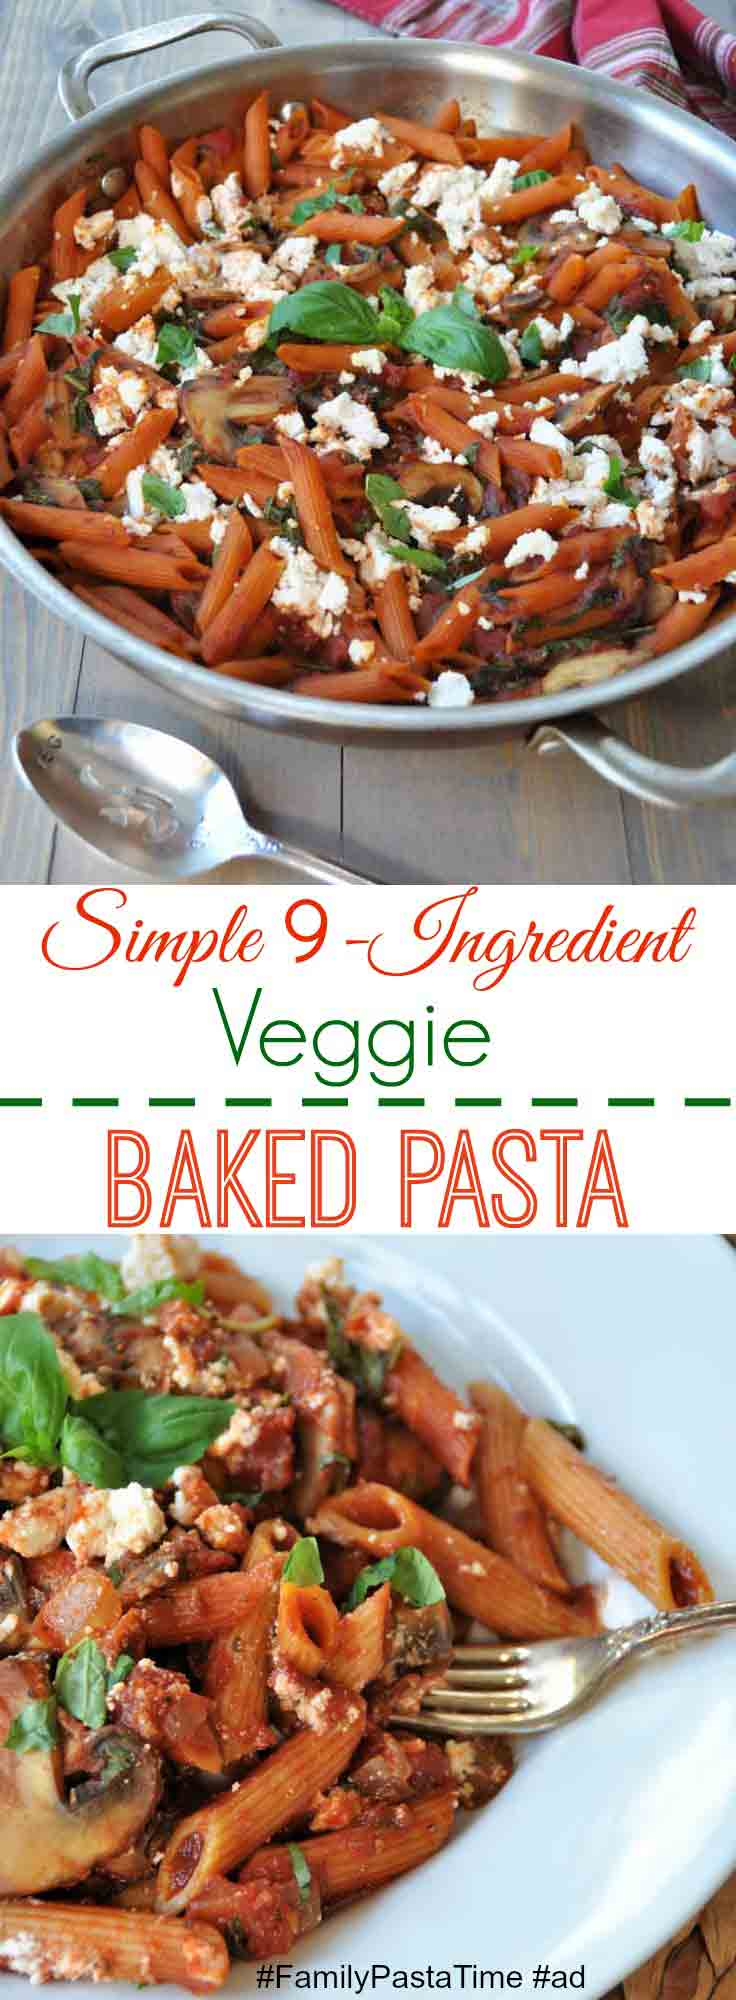 This delicious and easy 9 ingredient veggie pasta recipe is perfect for a busy weeknight or to take to a holiday gathering! #FamilyPastaTime #ad www.veganosity.com